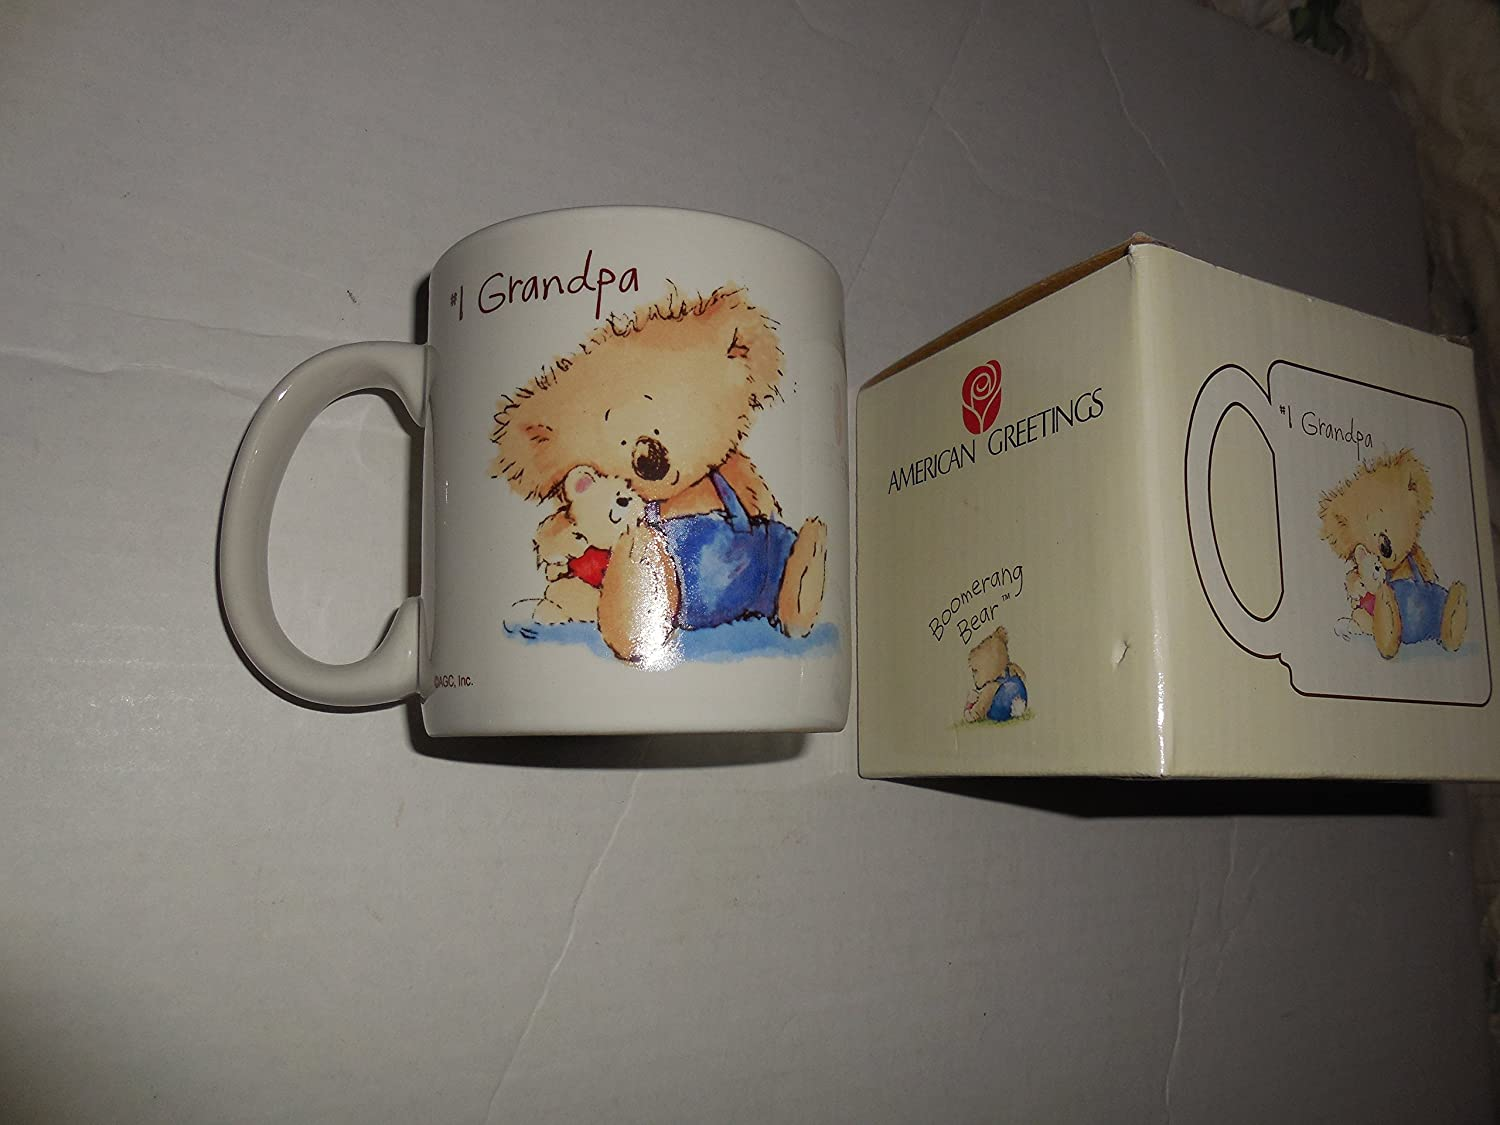 Amazon 1 Grandpa American Greetings Mug Boomerang Bear